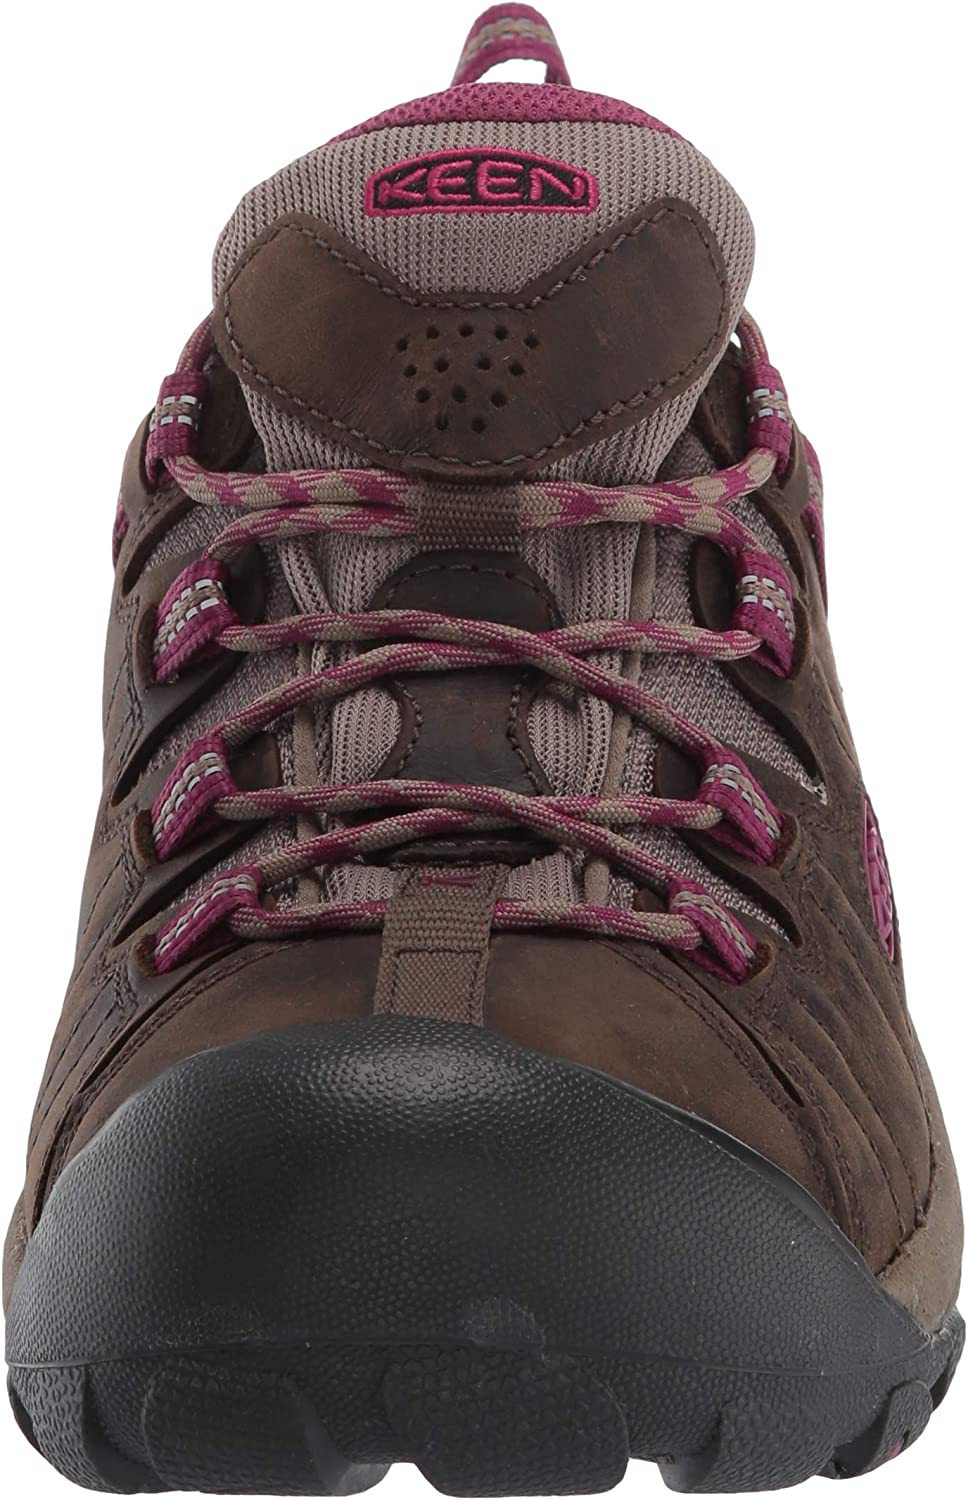 KEEN Women s Targhee Ii Waterproof Hiking Shoe